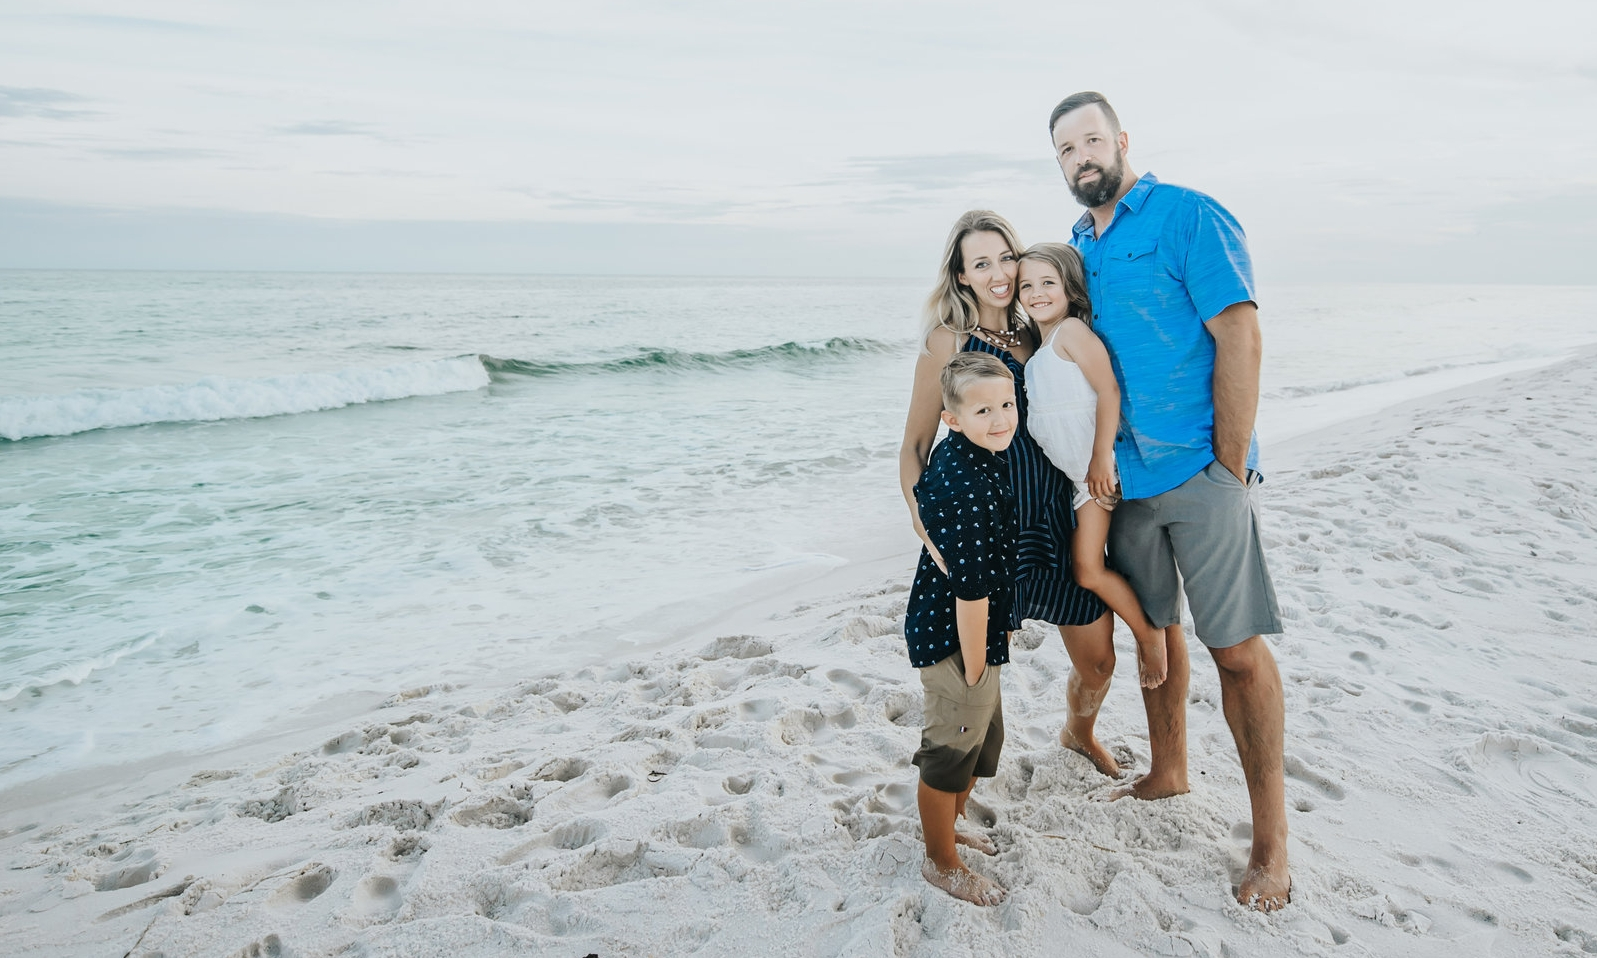 April with her husband Nathan, son JD, and daughter Marilyn, enjoying beautiful Pensacola Beach.